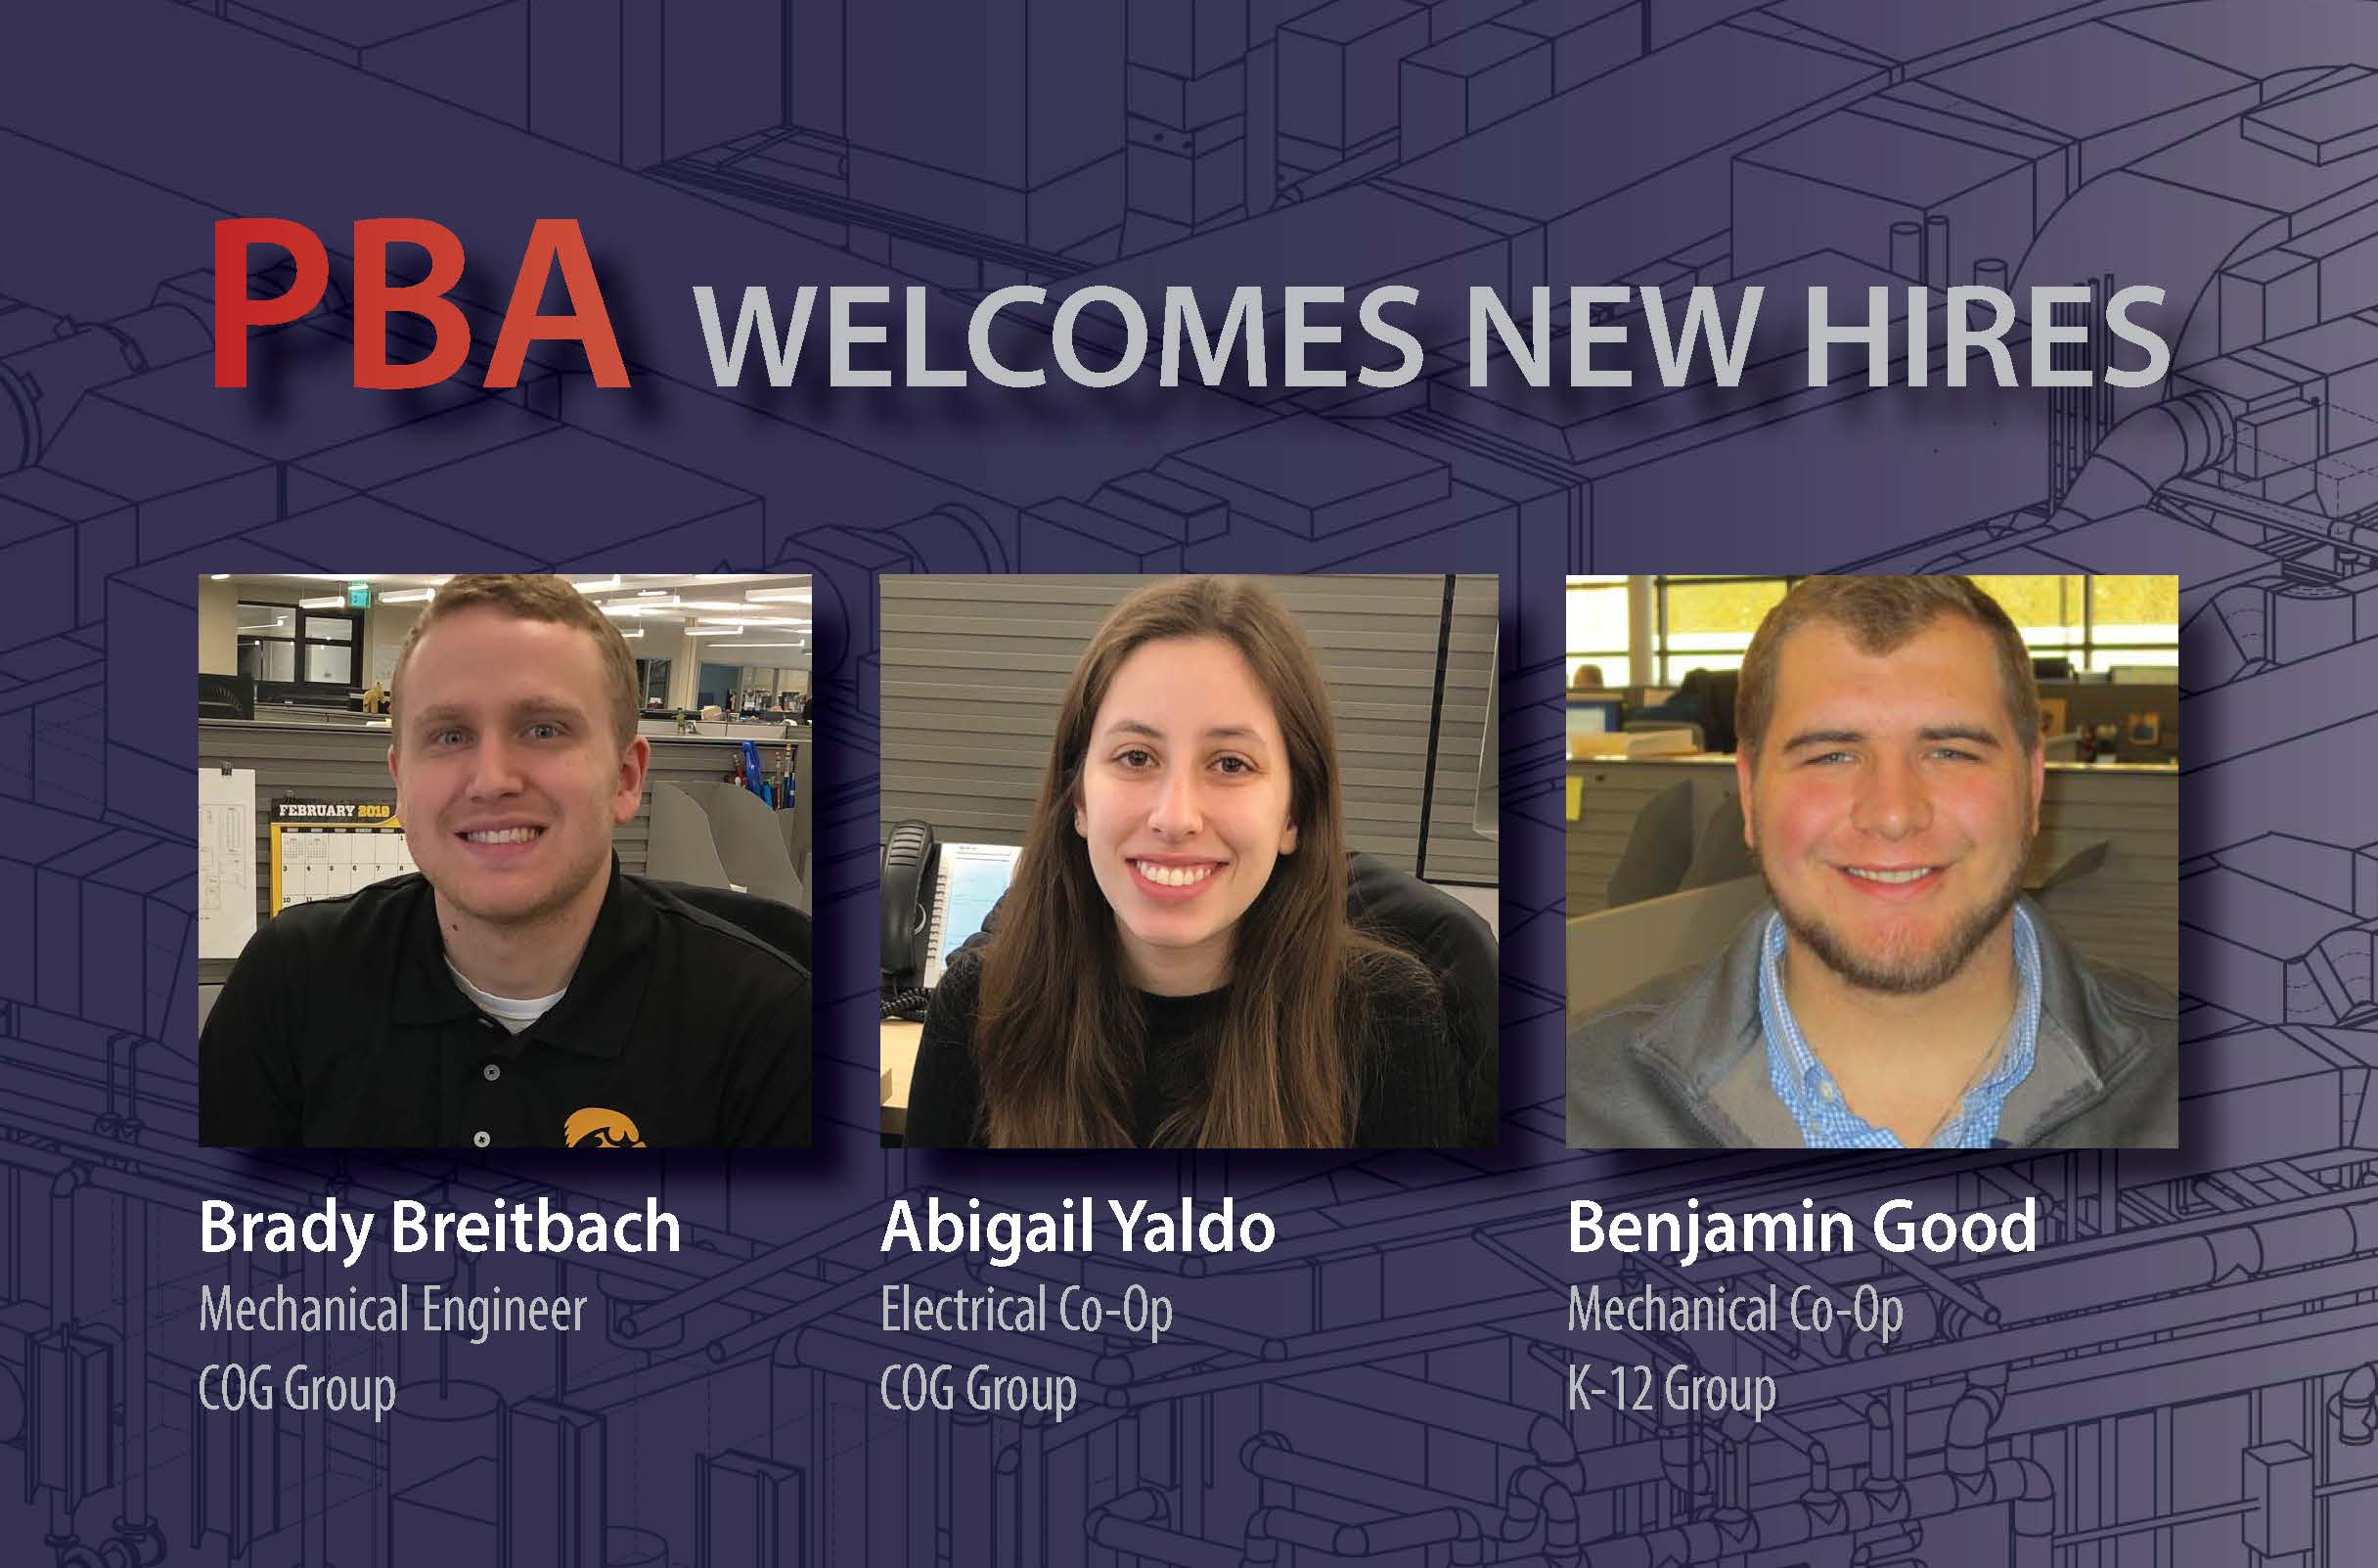 PBA, A Top MEP Engineering Design Firm, Announces 3 New Hires: B. Good, A. Yaldo and B. Breitbach